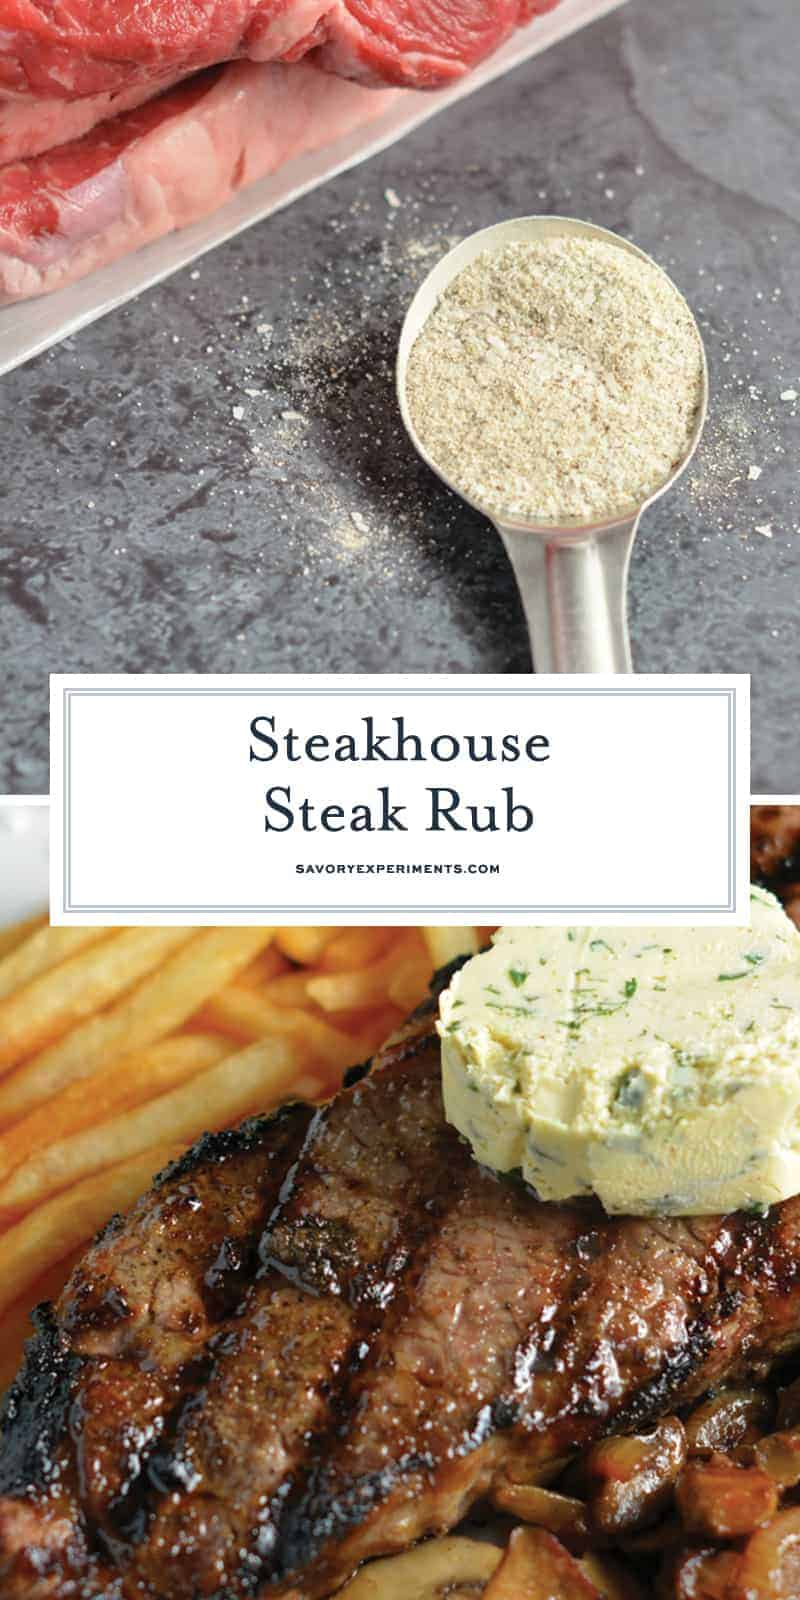 Steakhouse Steak Rub is a secret recipe that I received from a friend at a 5-star steakhouse. You won't beleive how easy it is to make and how delicious your steak will taste!#steakrub #beefseasoning www.savoryexperiments.com